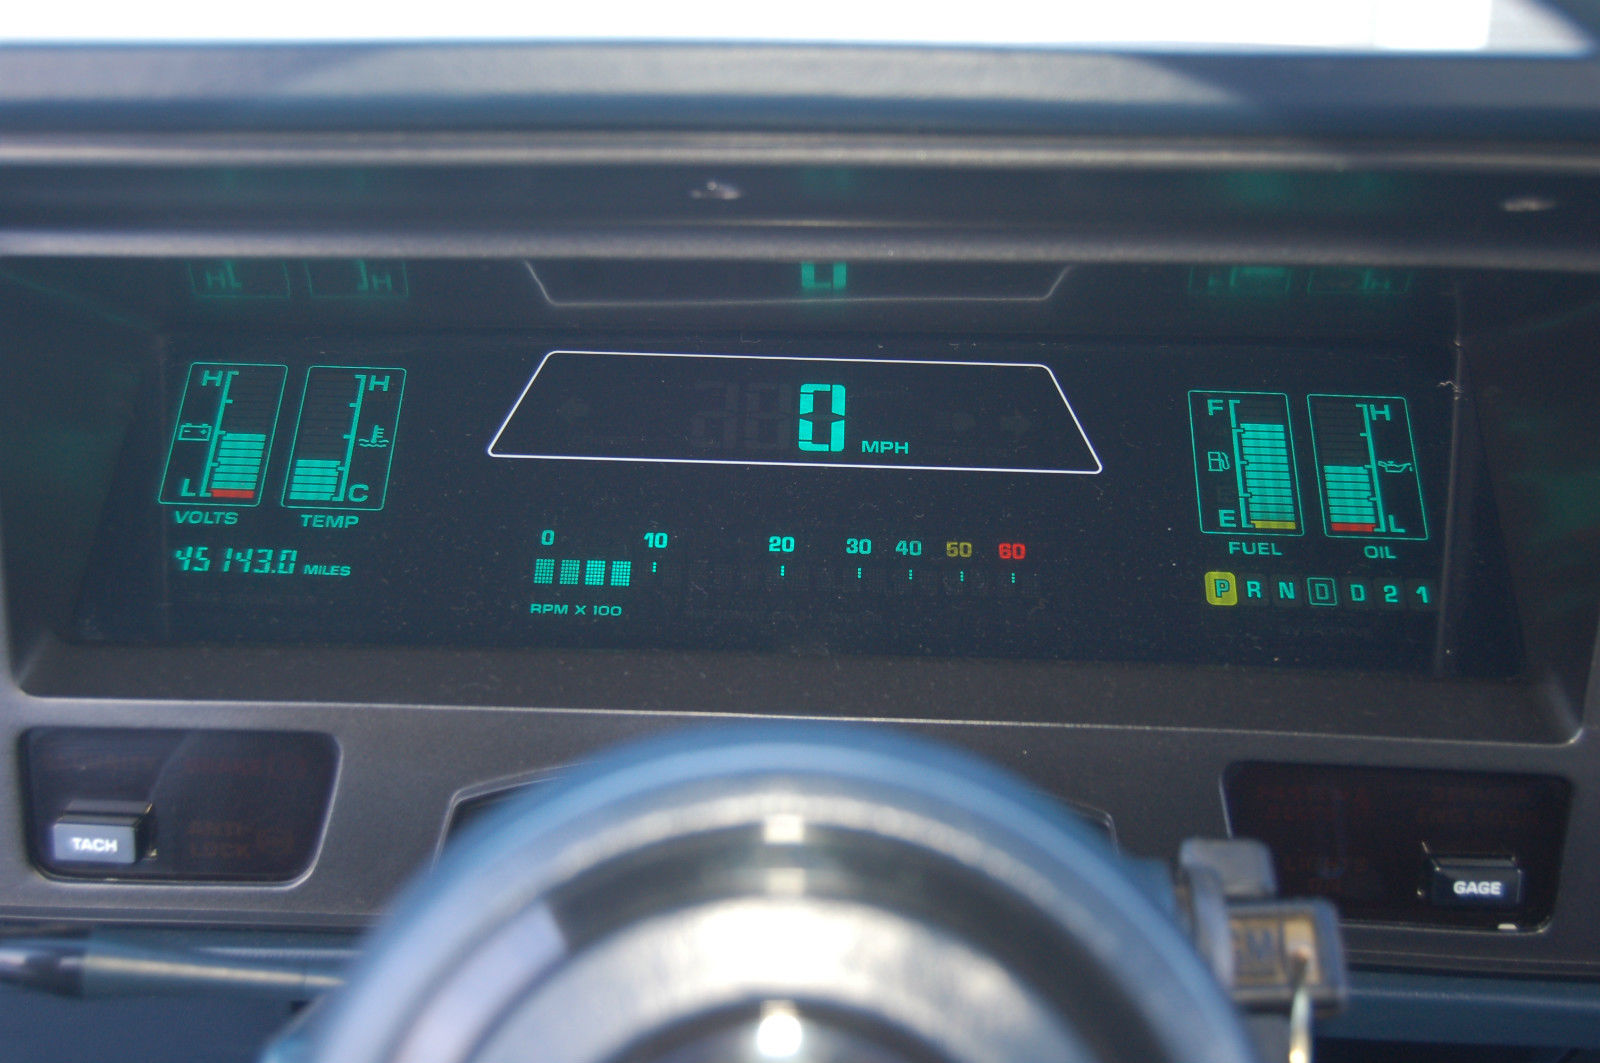 Oldsmobile Toronado (1986-1992). Note that the text information below the speed can show RPM as well.